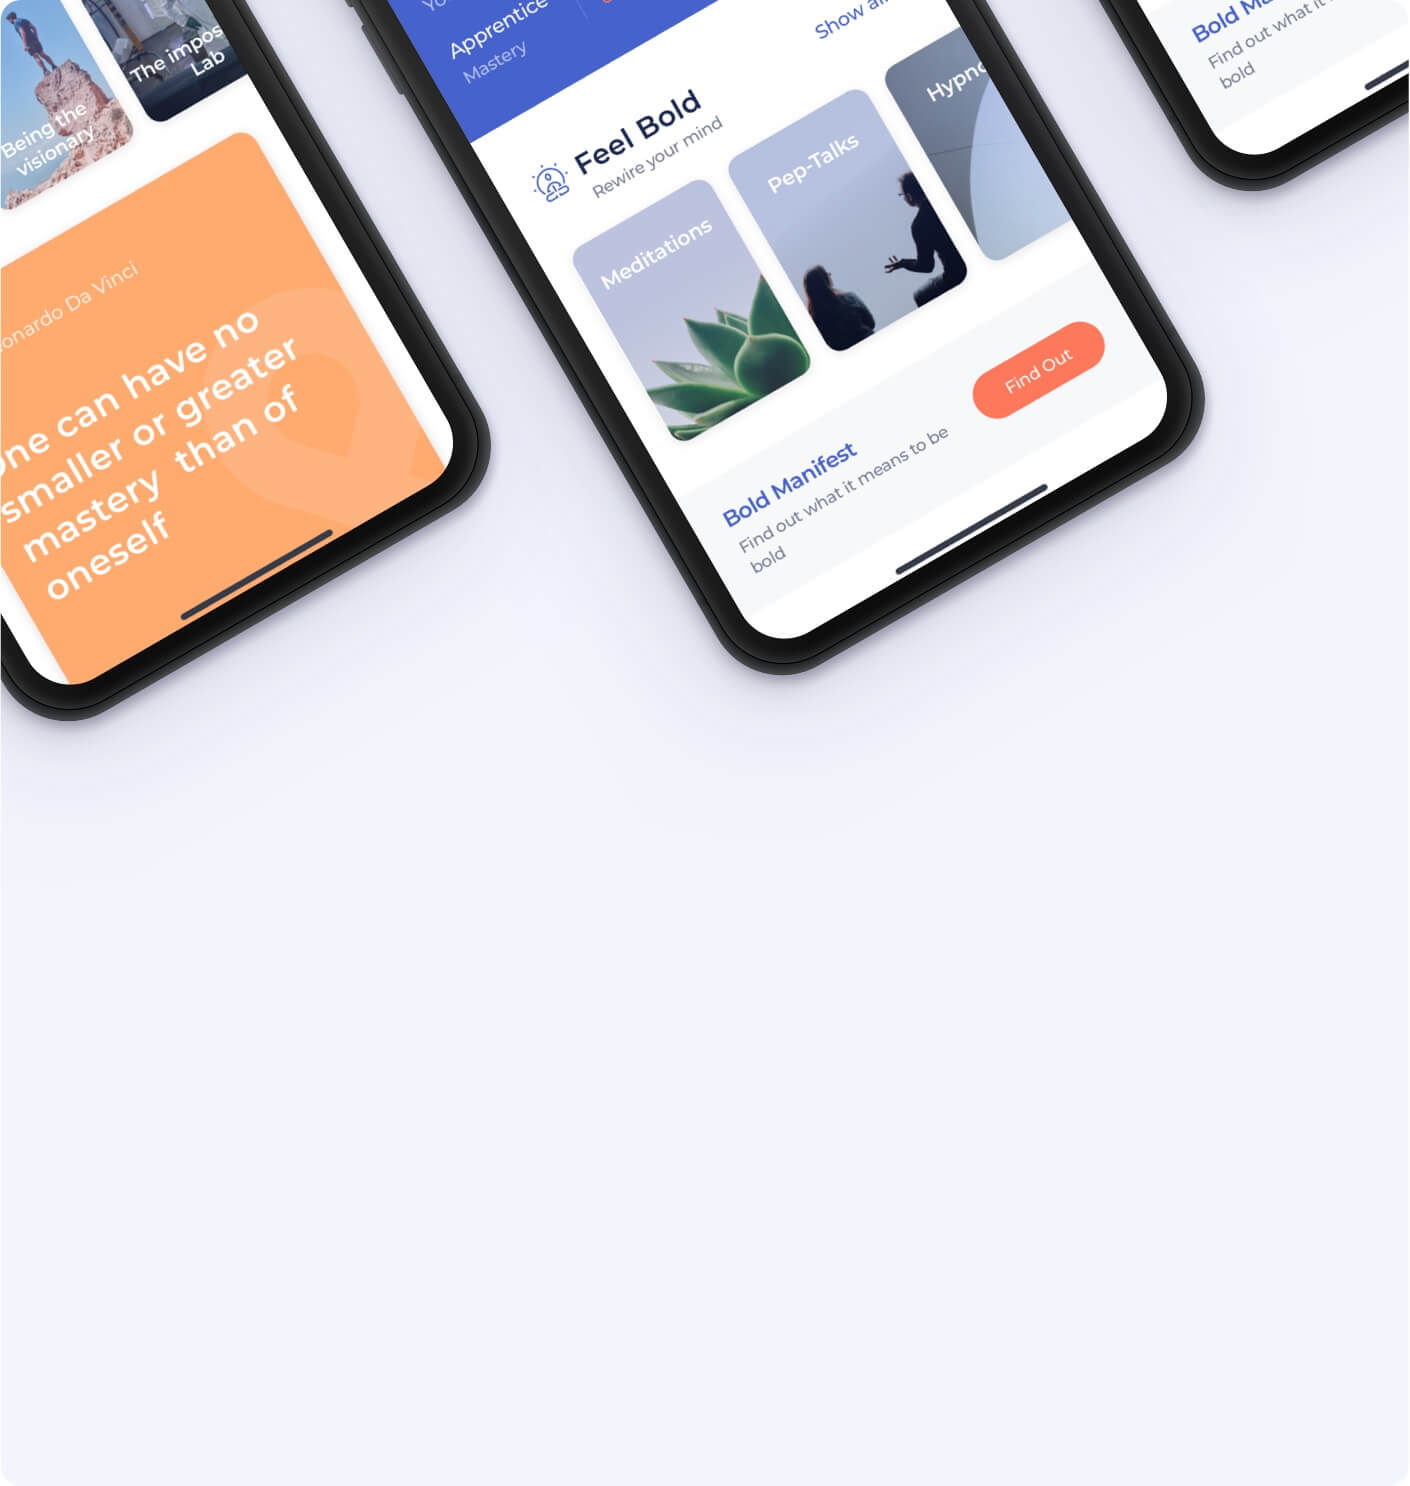 about app